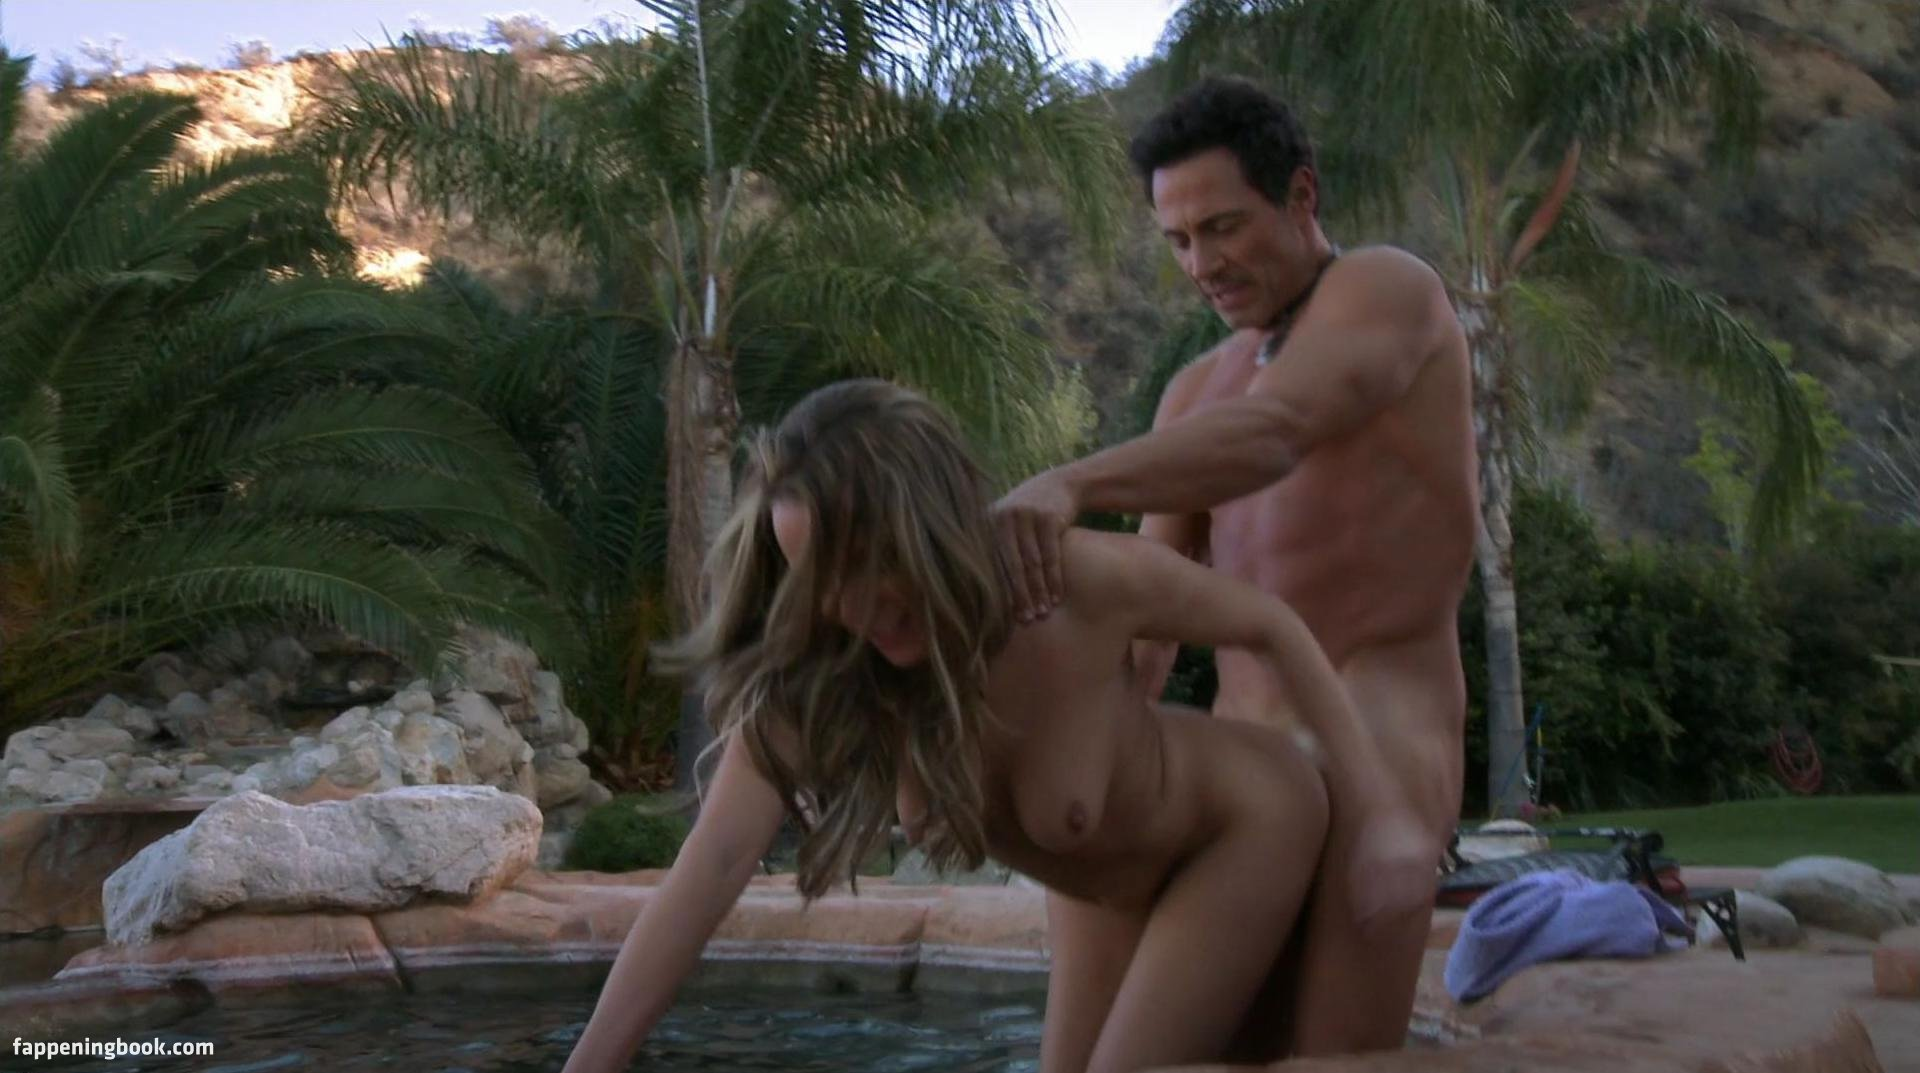 Amy Paffrath Nude pristine edge nude, sexy, the fappening, uncensored - photo